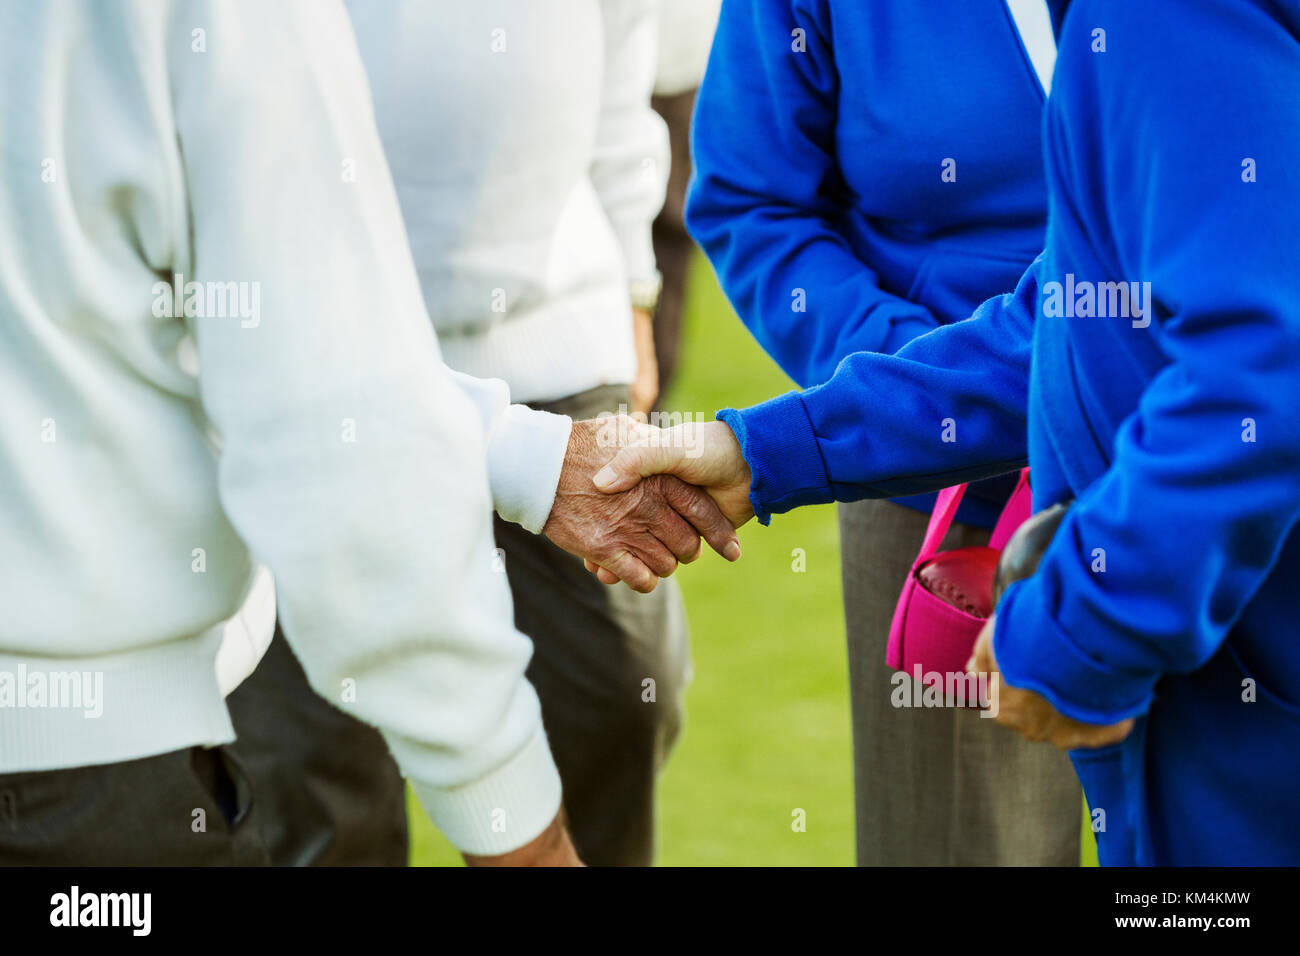 Two teams, four people shaking hands before or after a sporting match. - Stock Image